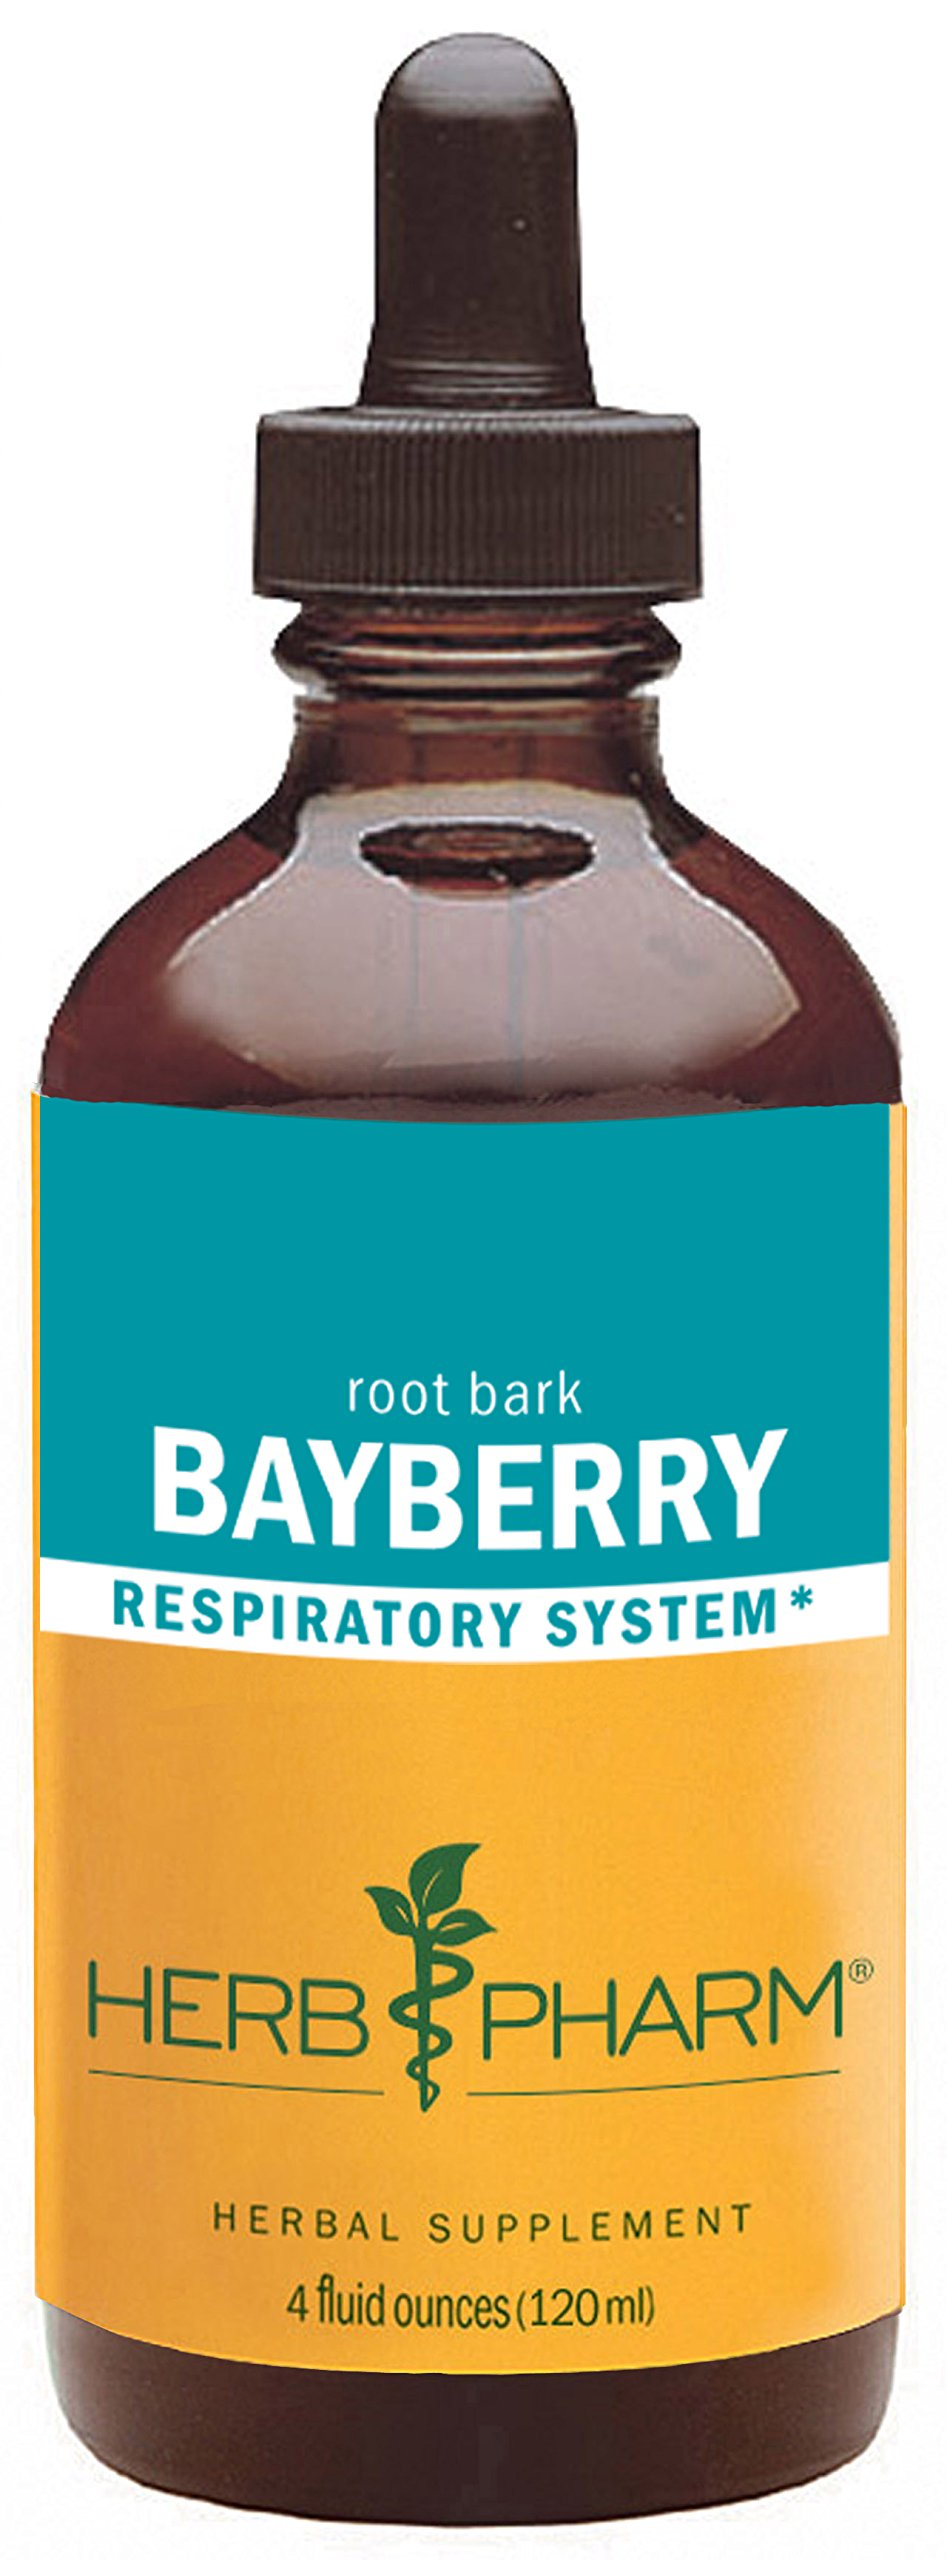 Herb Pharm Bayberry Liquid Extract for Respiratory System Support - 4 Ounce